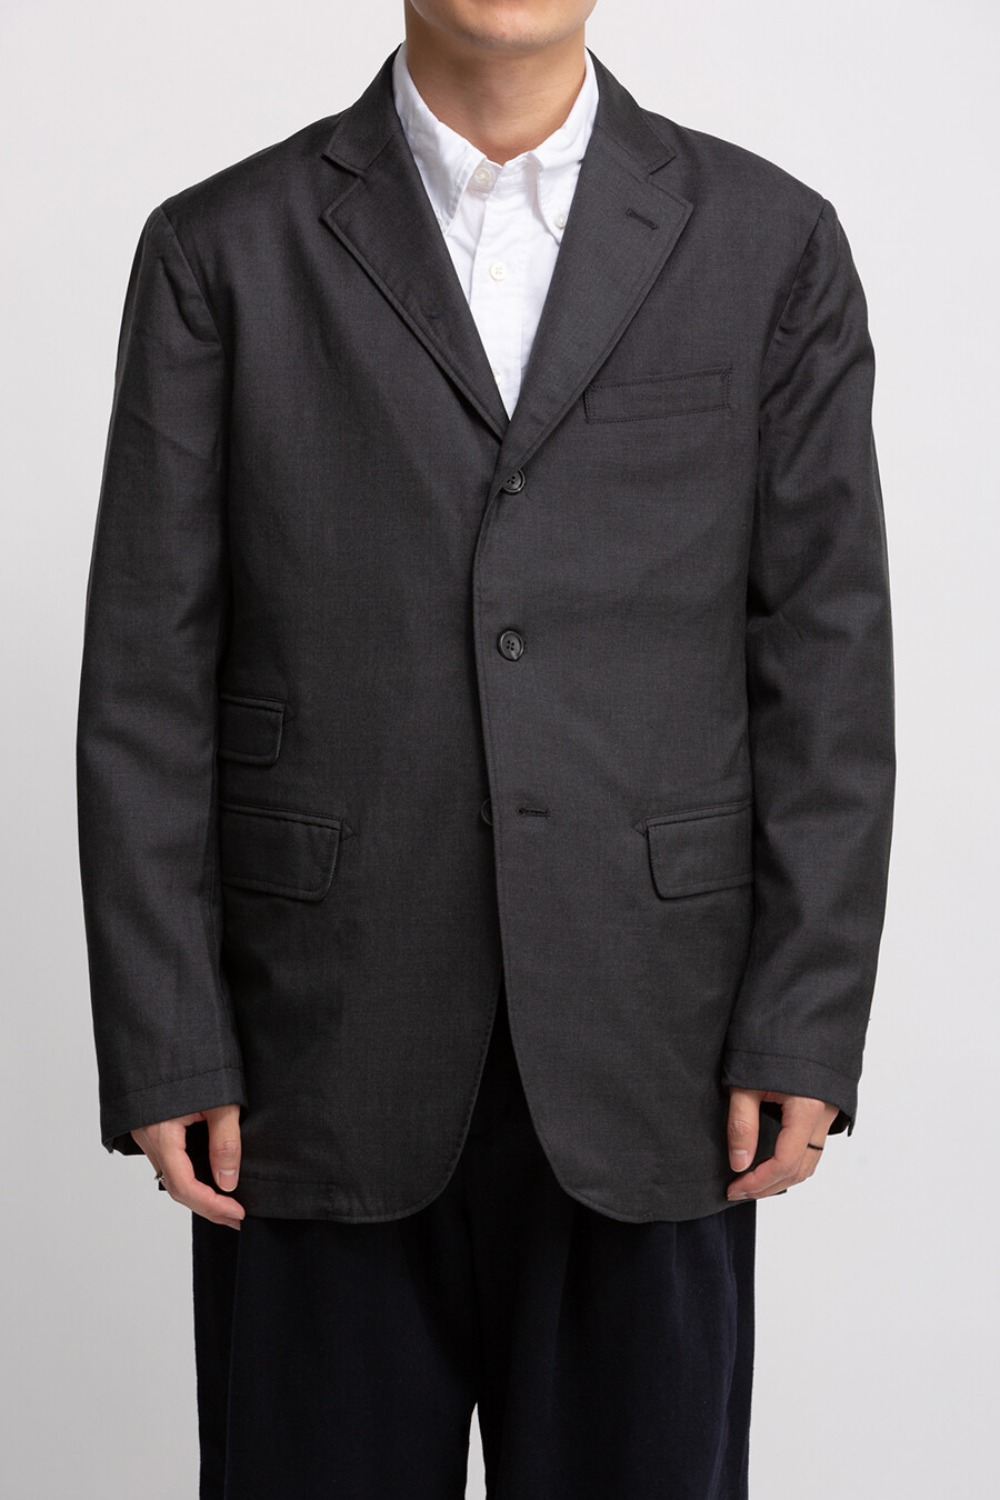 LAWRENCE JACKET CHARCOAL WORSTED WOOL GABADINE